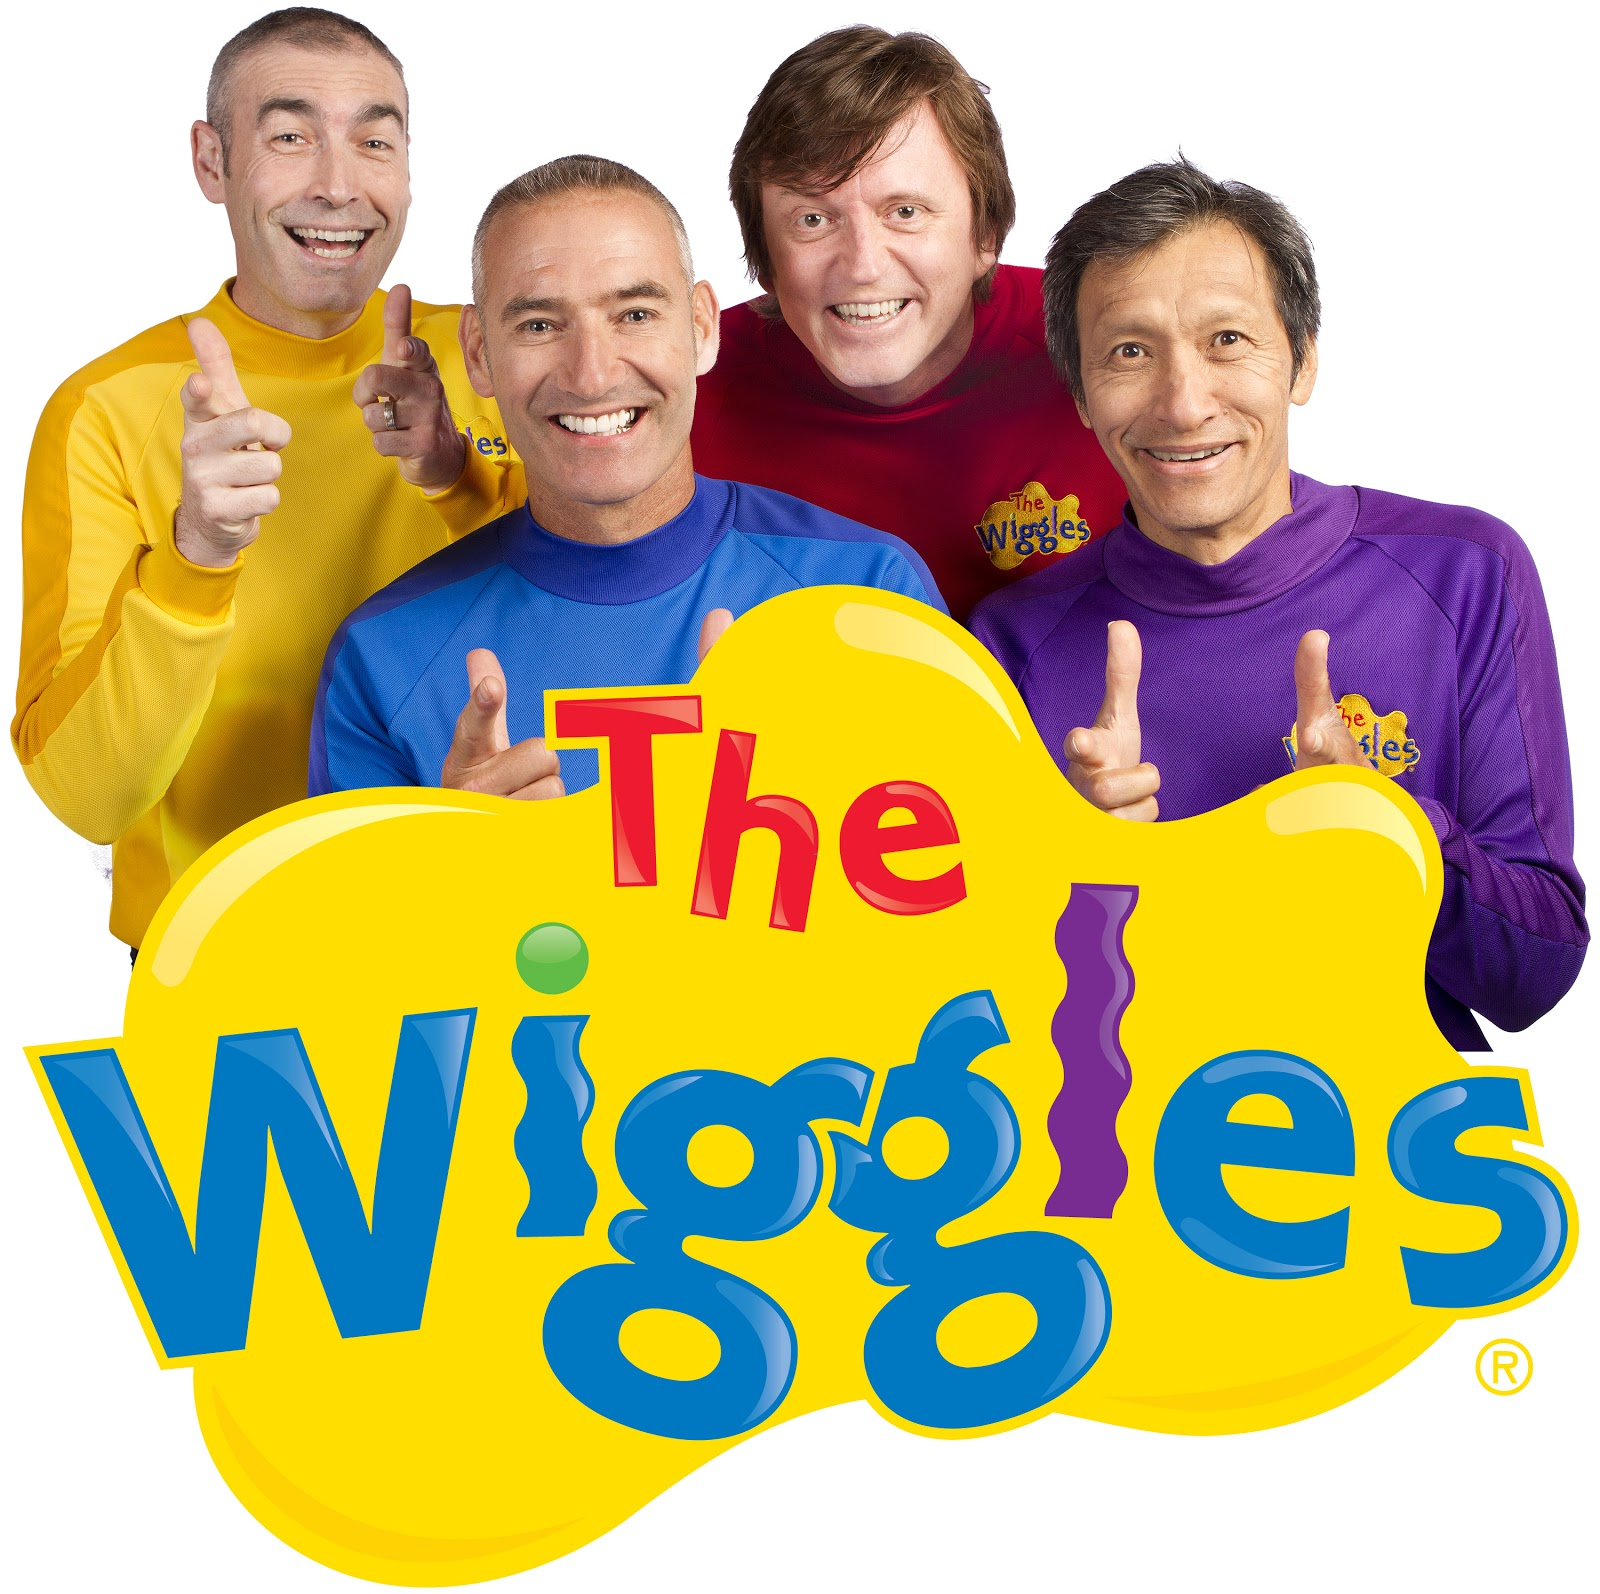 I promise I don't blast the wiggles in the shower, for real.